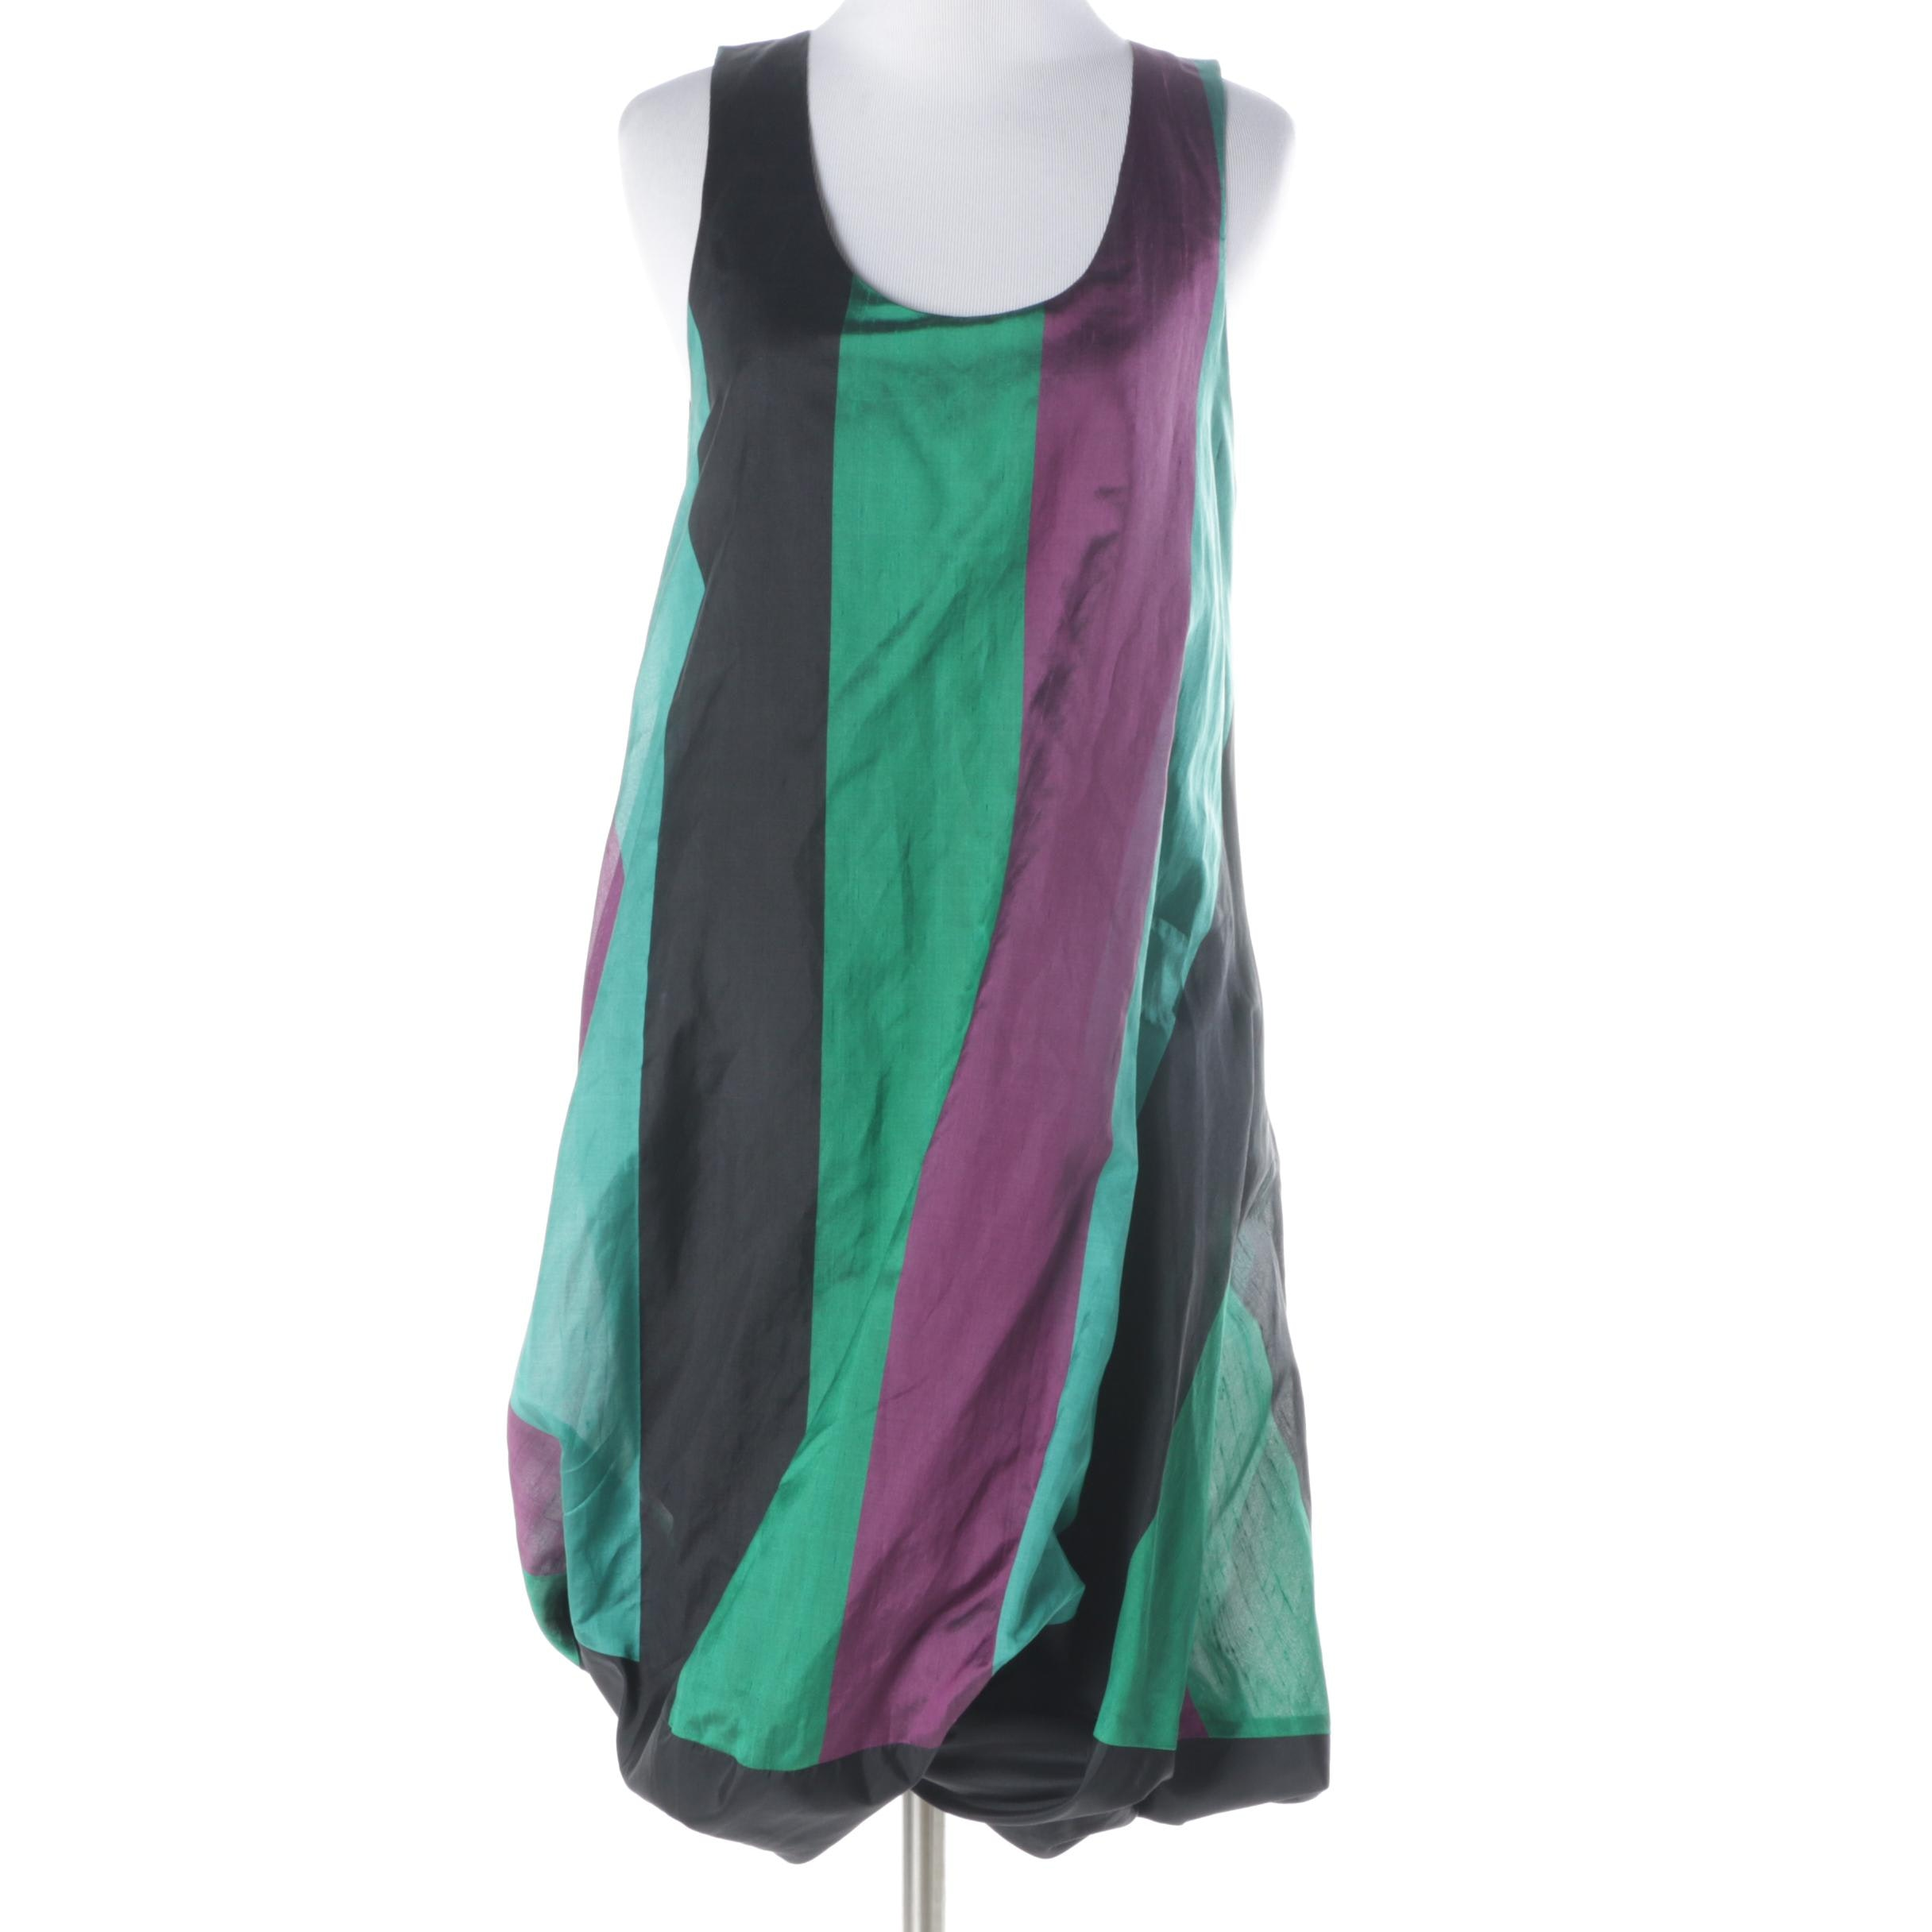 Katy Rodgriguez Green and Black Bubble Dress